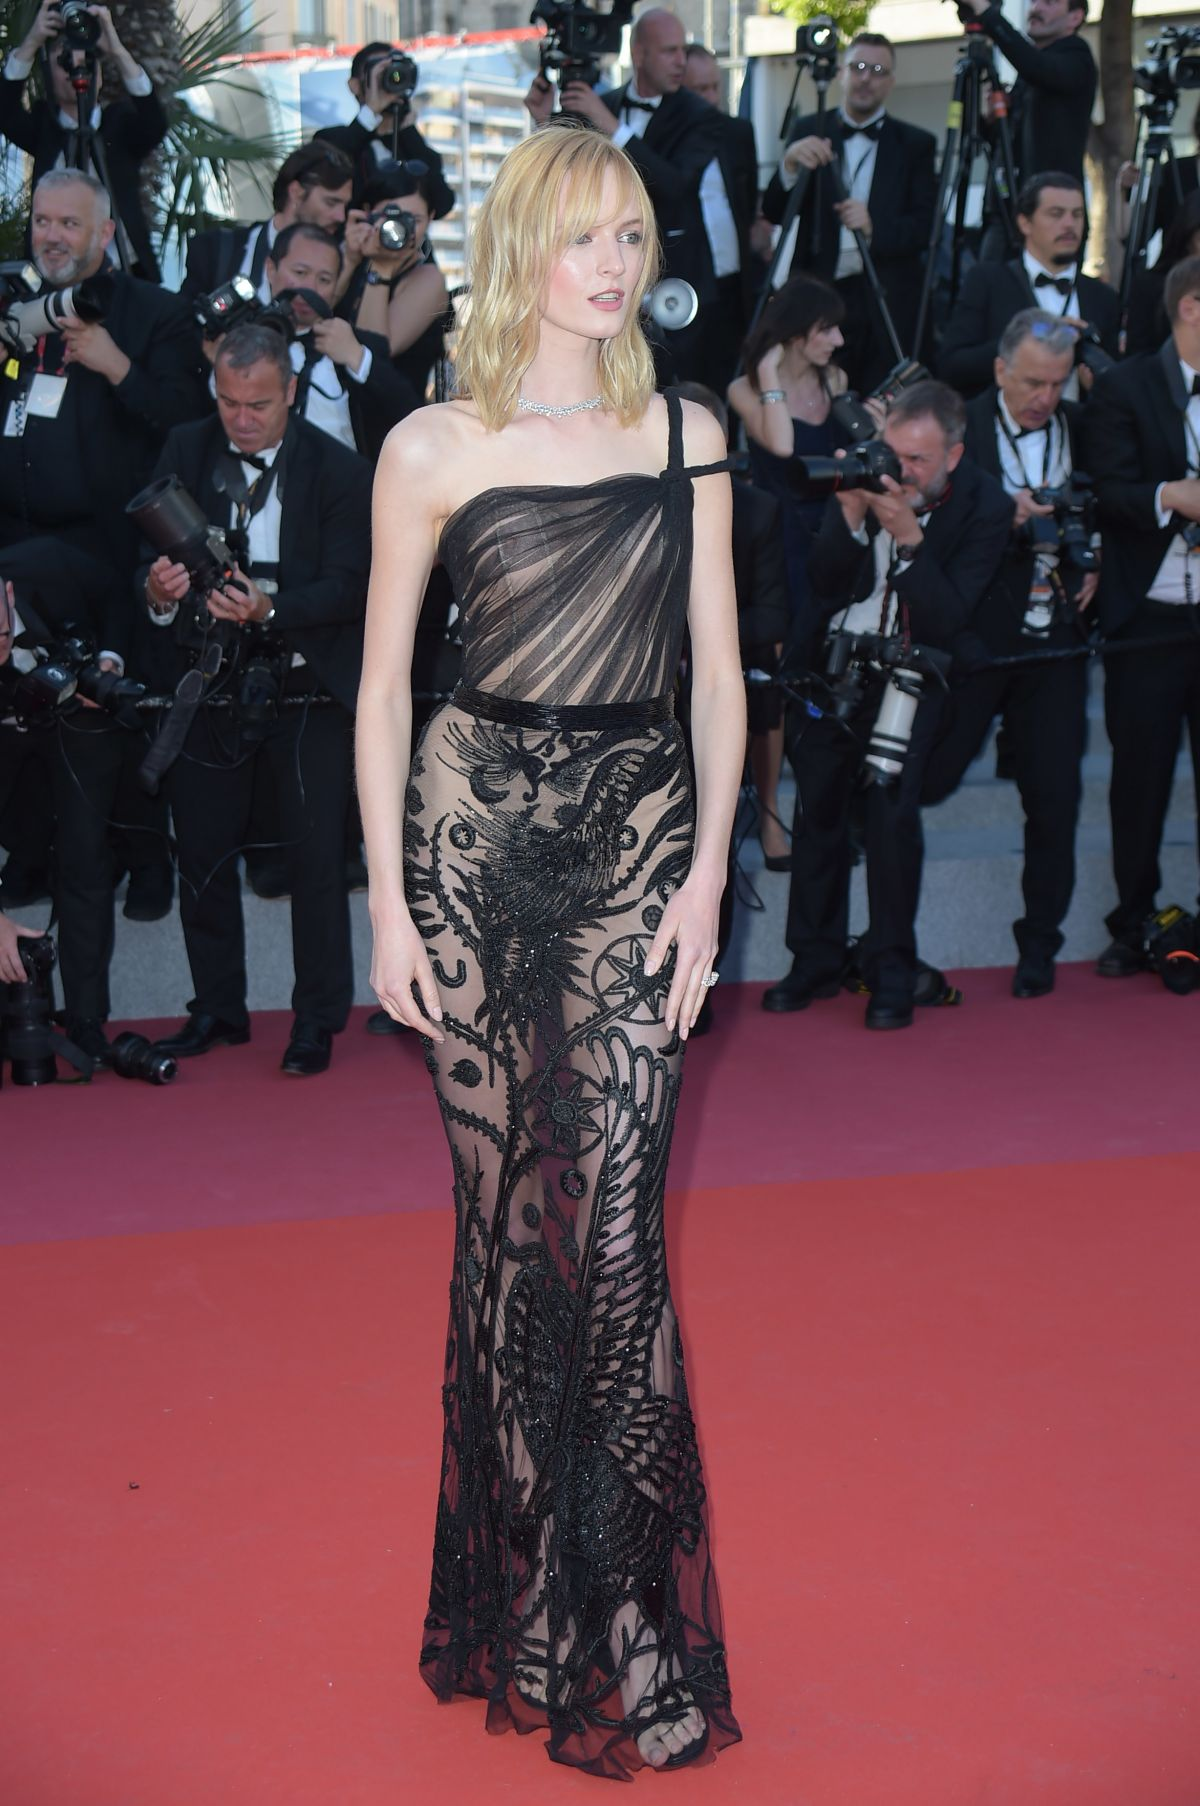 Daria Strokous At 'Ash Is Purest White' premiere, 71st Cannes Film Festival, France